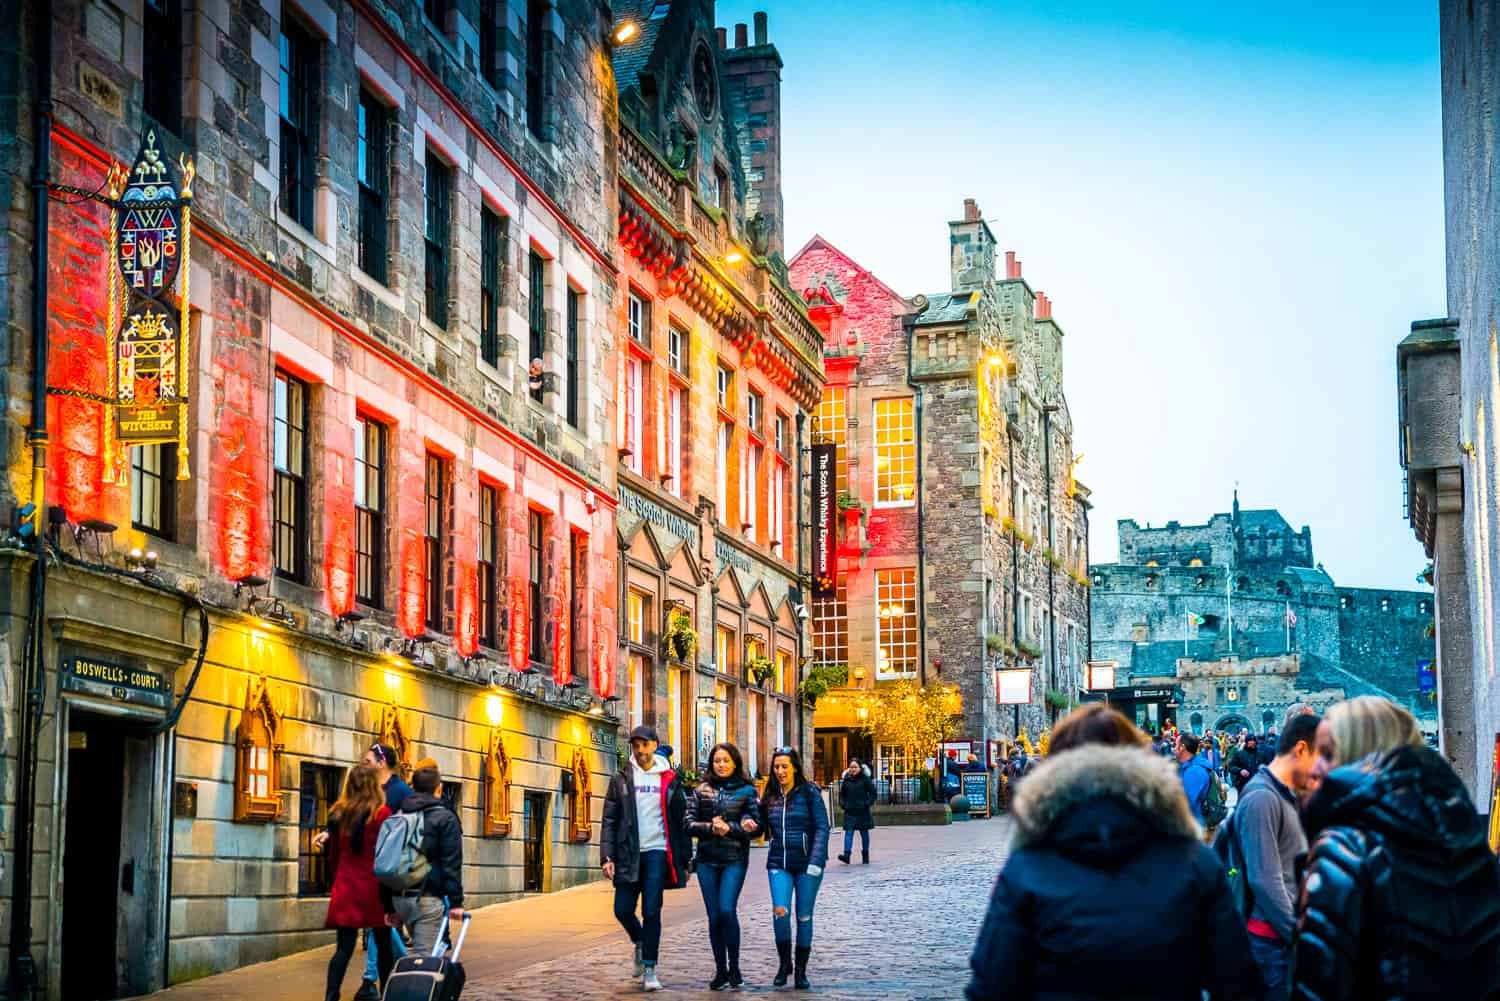 night on the colorful streets of Edinburgh